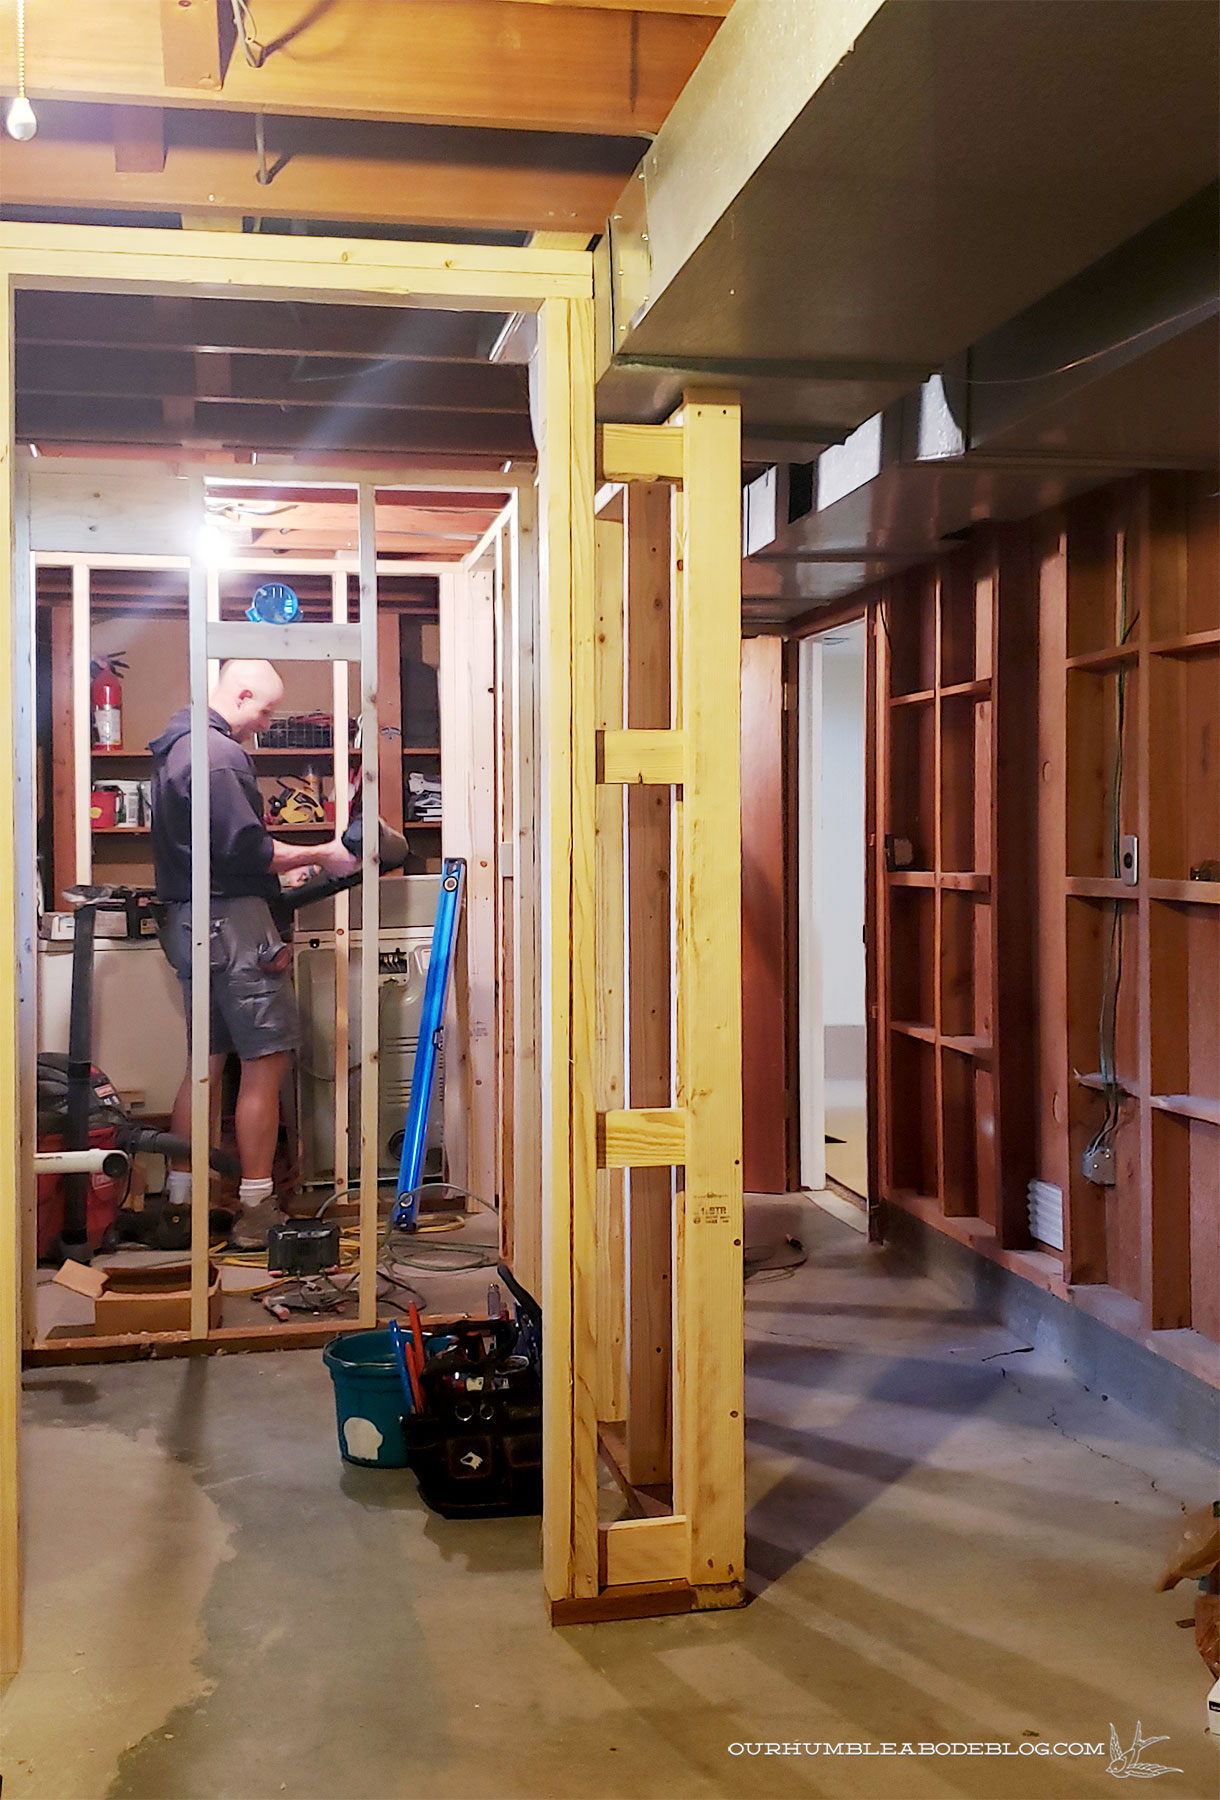 Basement-Progress-Toward-Bathroom-Door